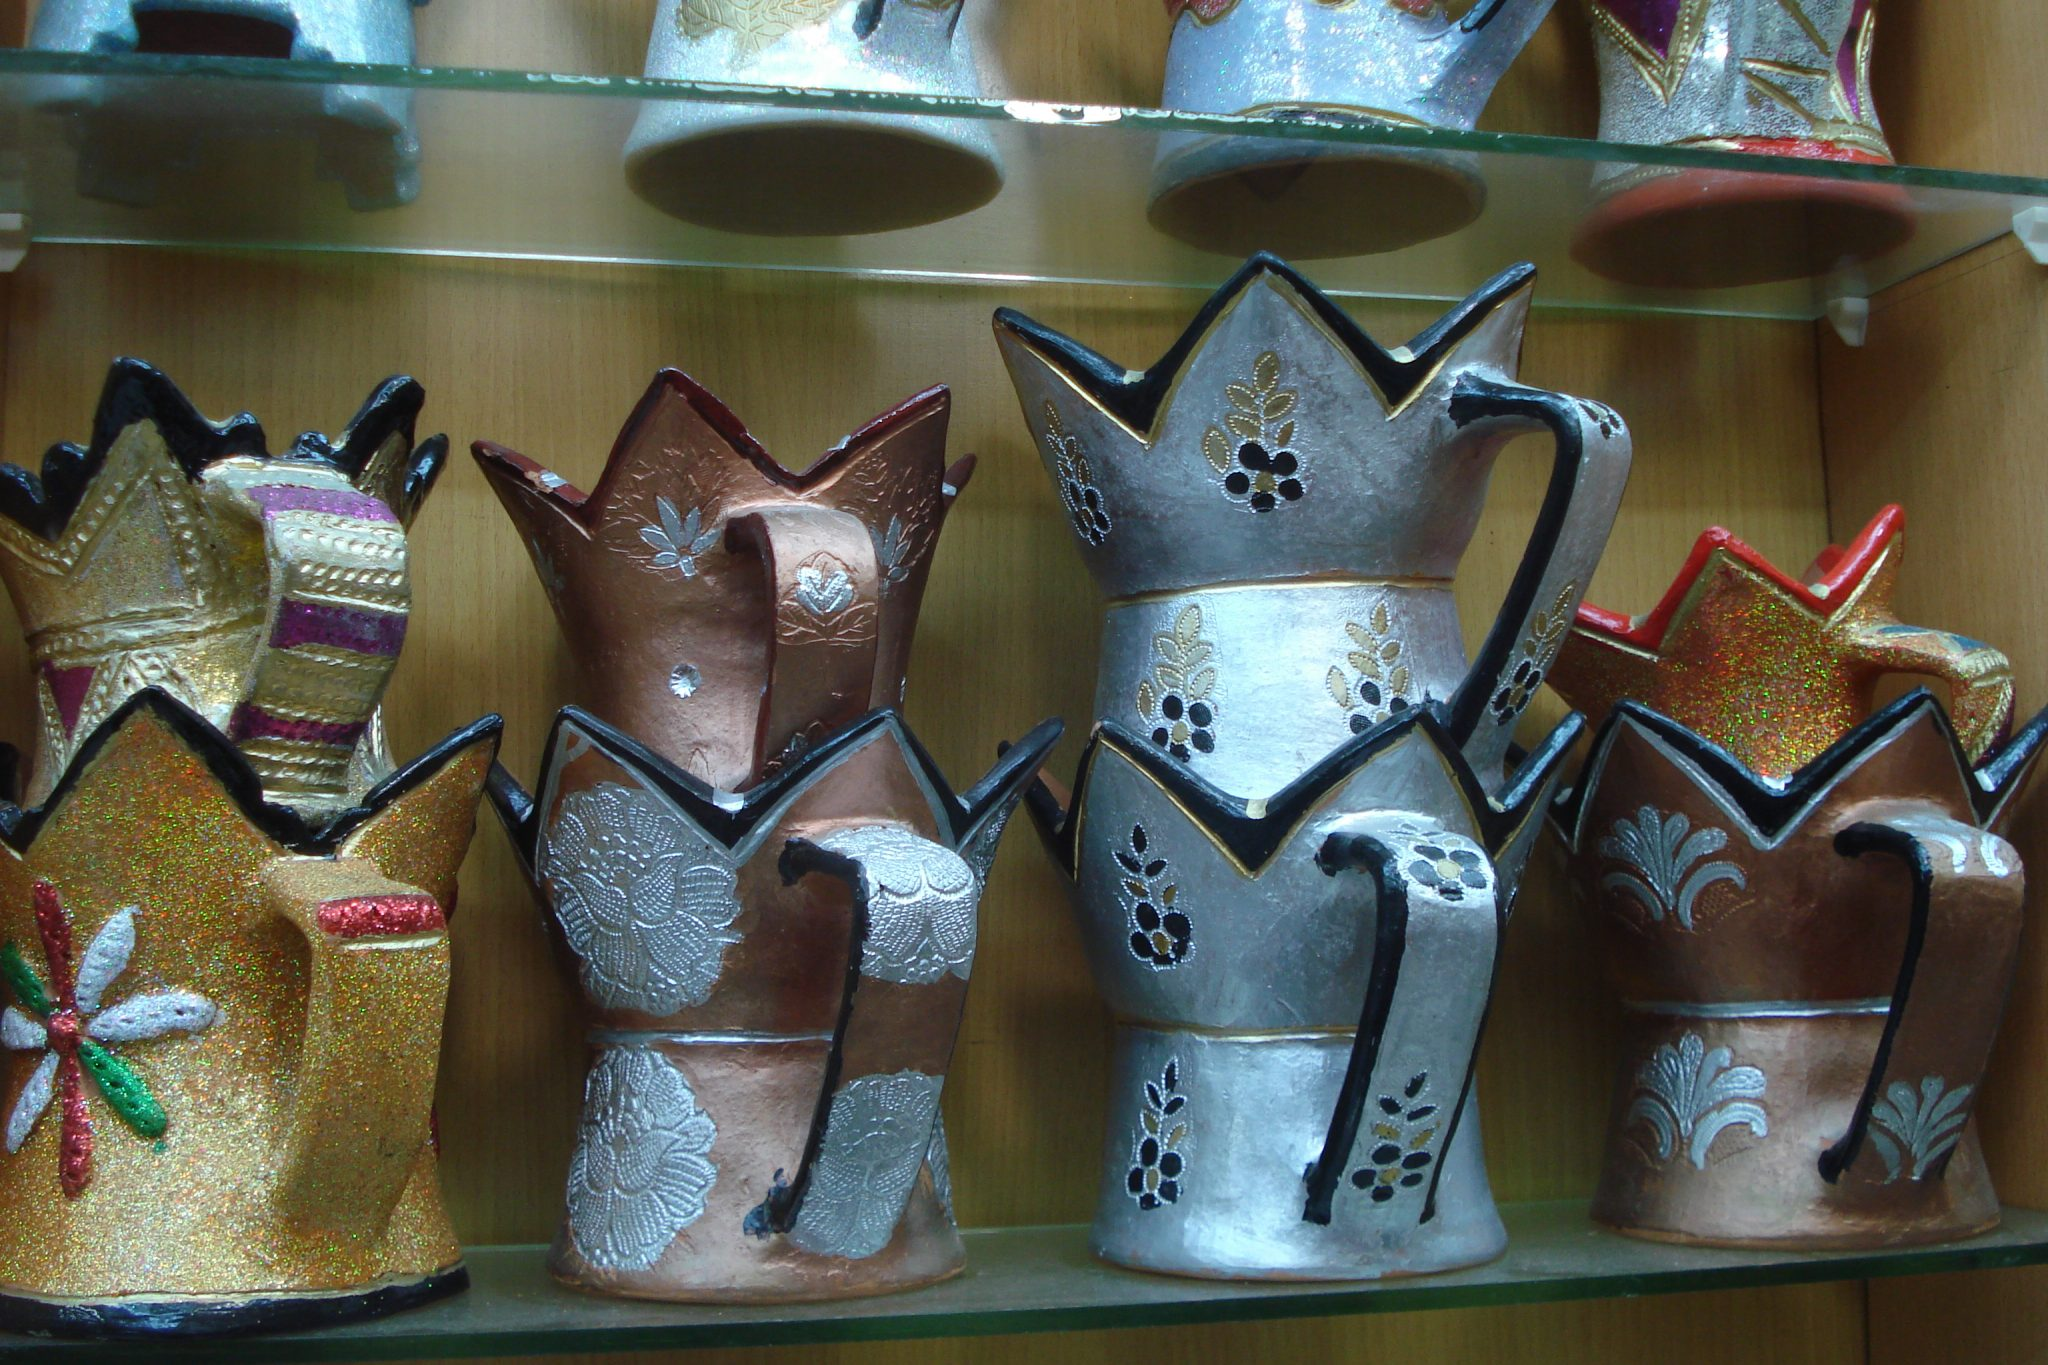 Eight frankincense burners of gold, silver and bronze colors on a glass shop shelf in a souq in Salalah, Oman